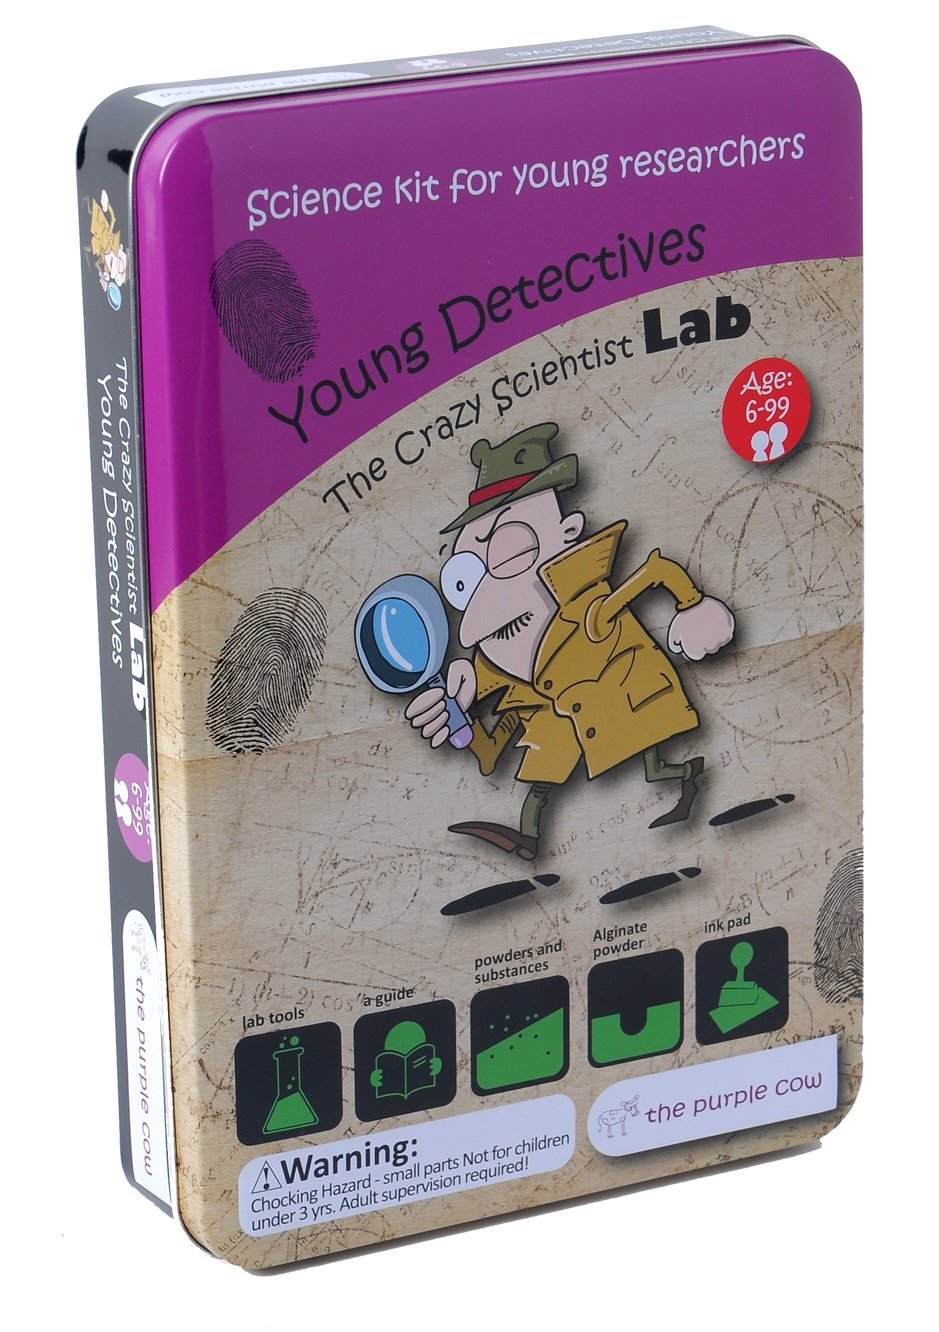 The Purple Cow The Crazy Scientist Lab Young Detectives - Science Kits for Young Researchers - for Learning & Education - STEM/ Steam Educational Games for Kids, Boys & Girls, with Instructions by The Purple Cow